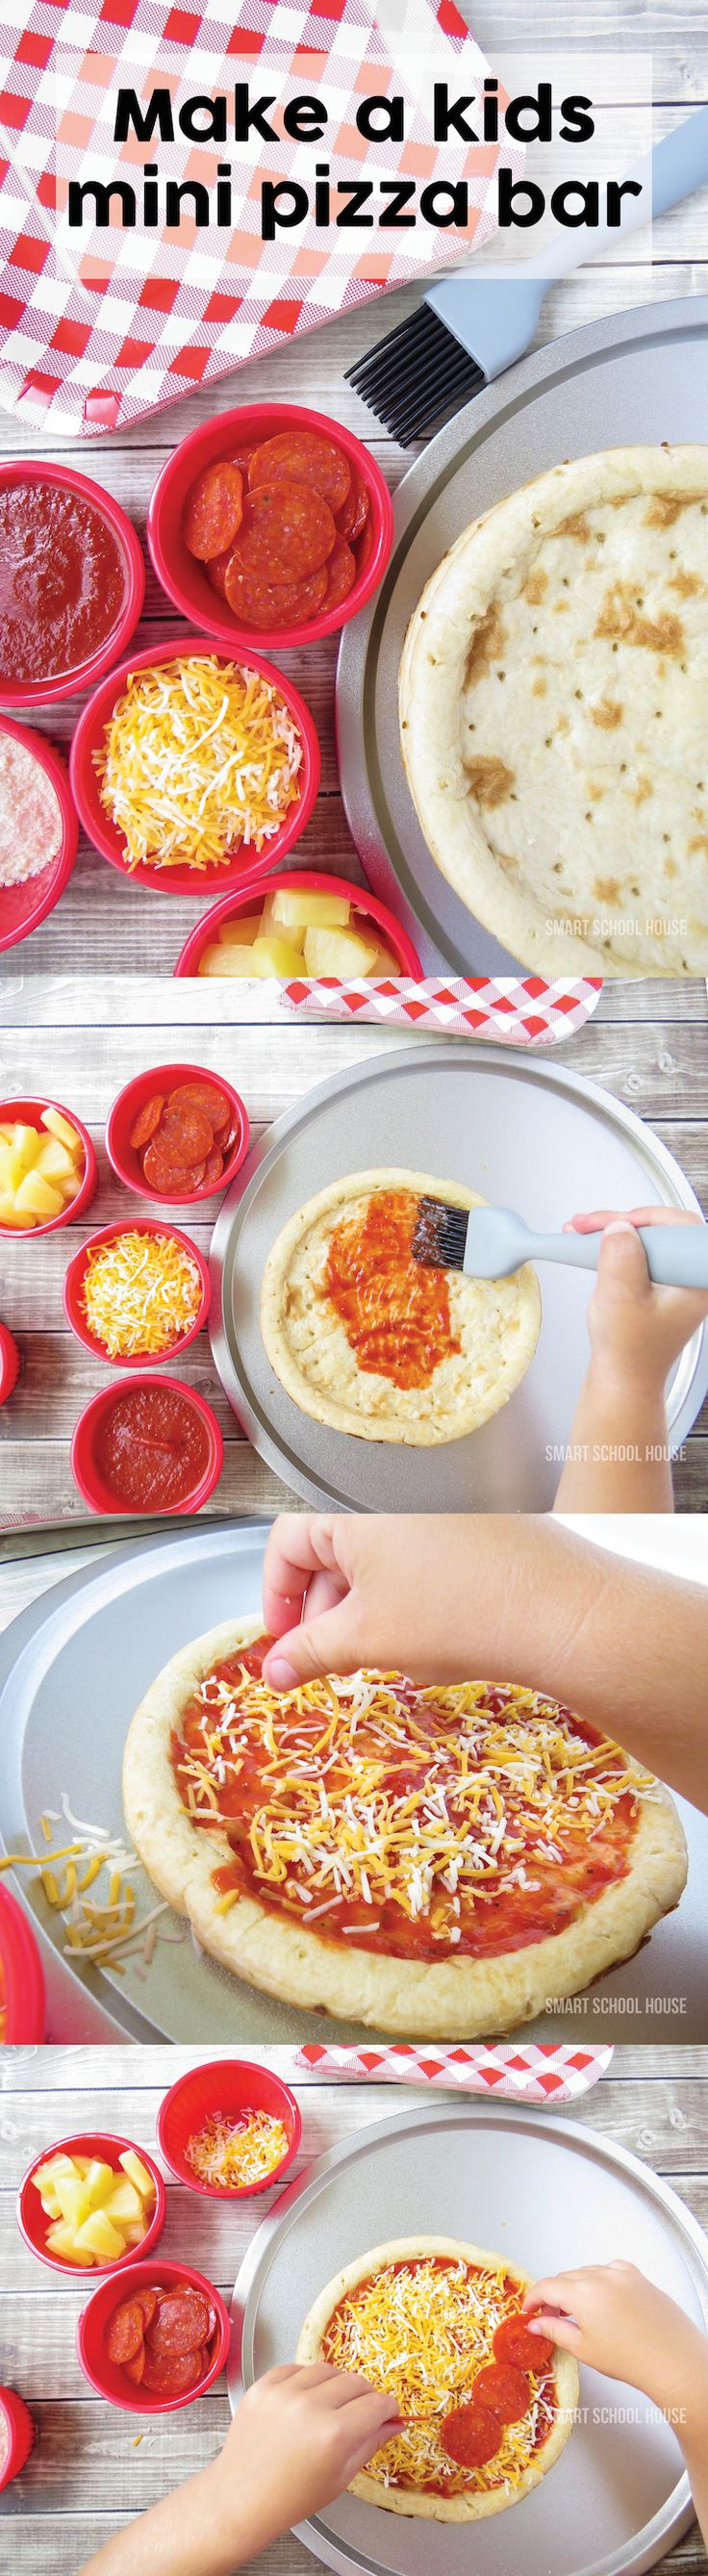 """Make a kids pizza bar! Include mini pizzas, small cups of various toppings, and a brush to """"paint"""" on the pizza sauce (it keeps things cleaner)."""